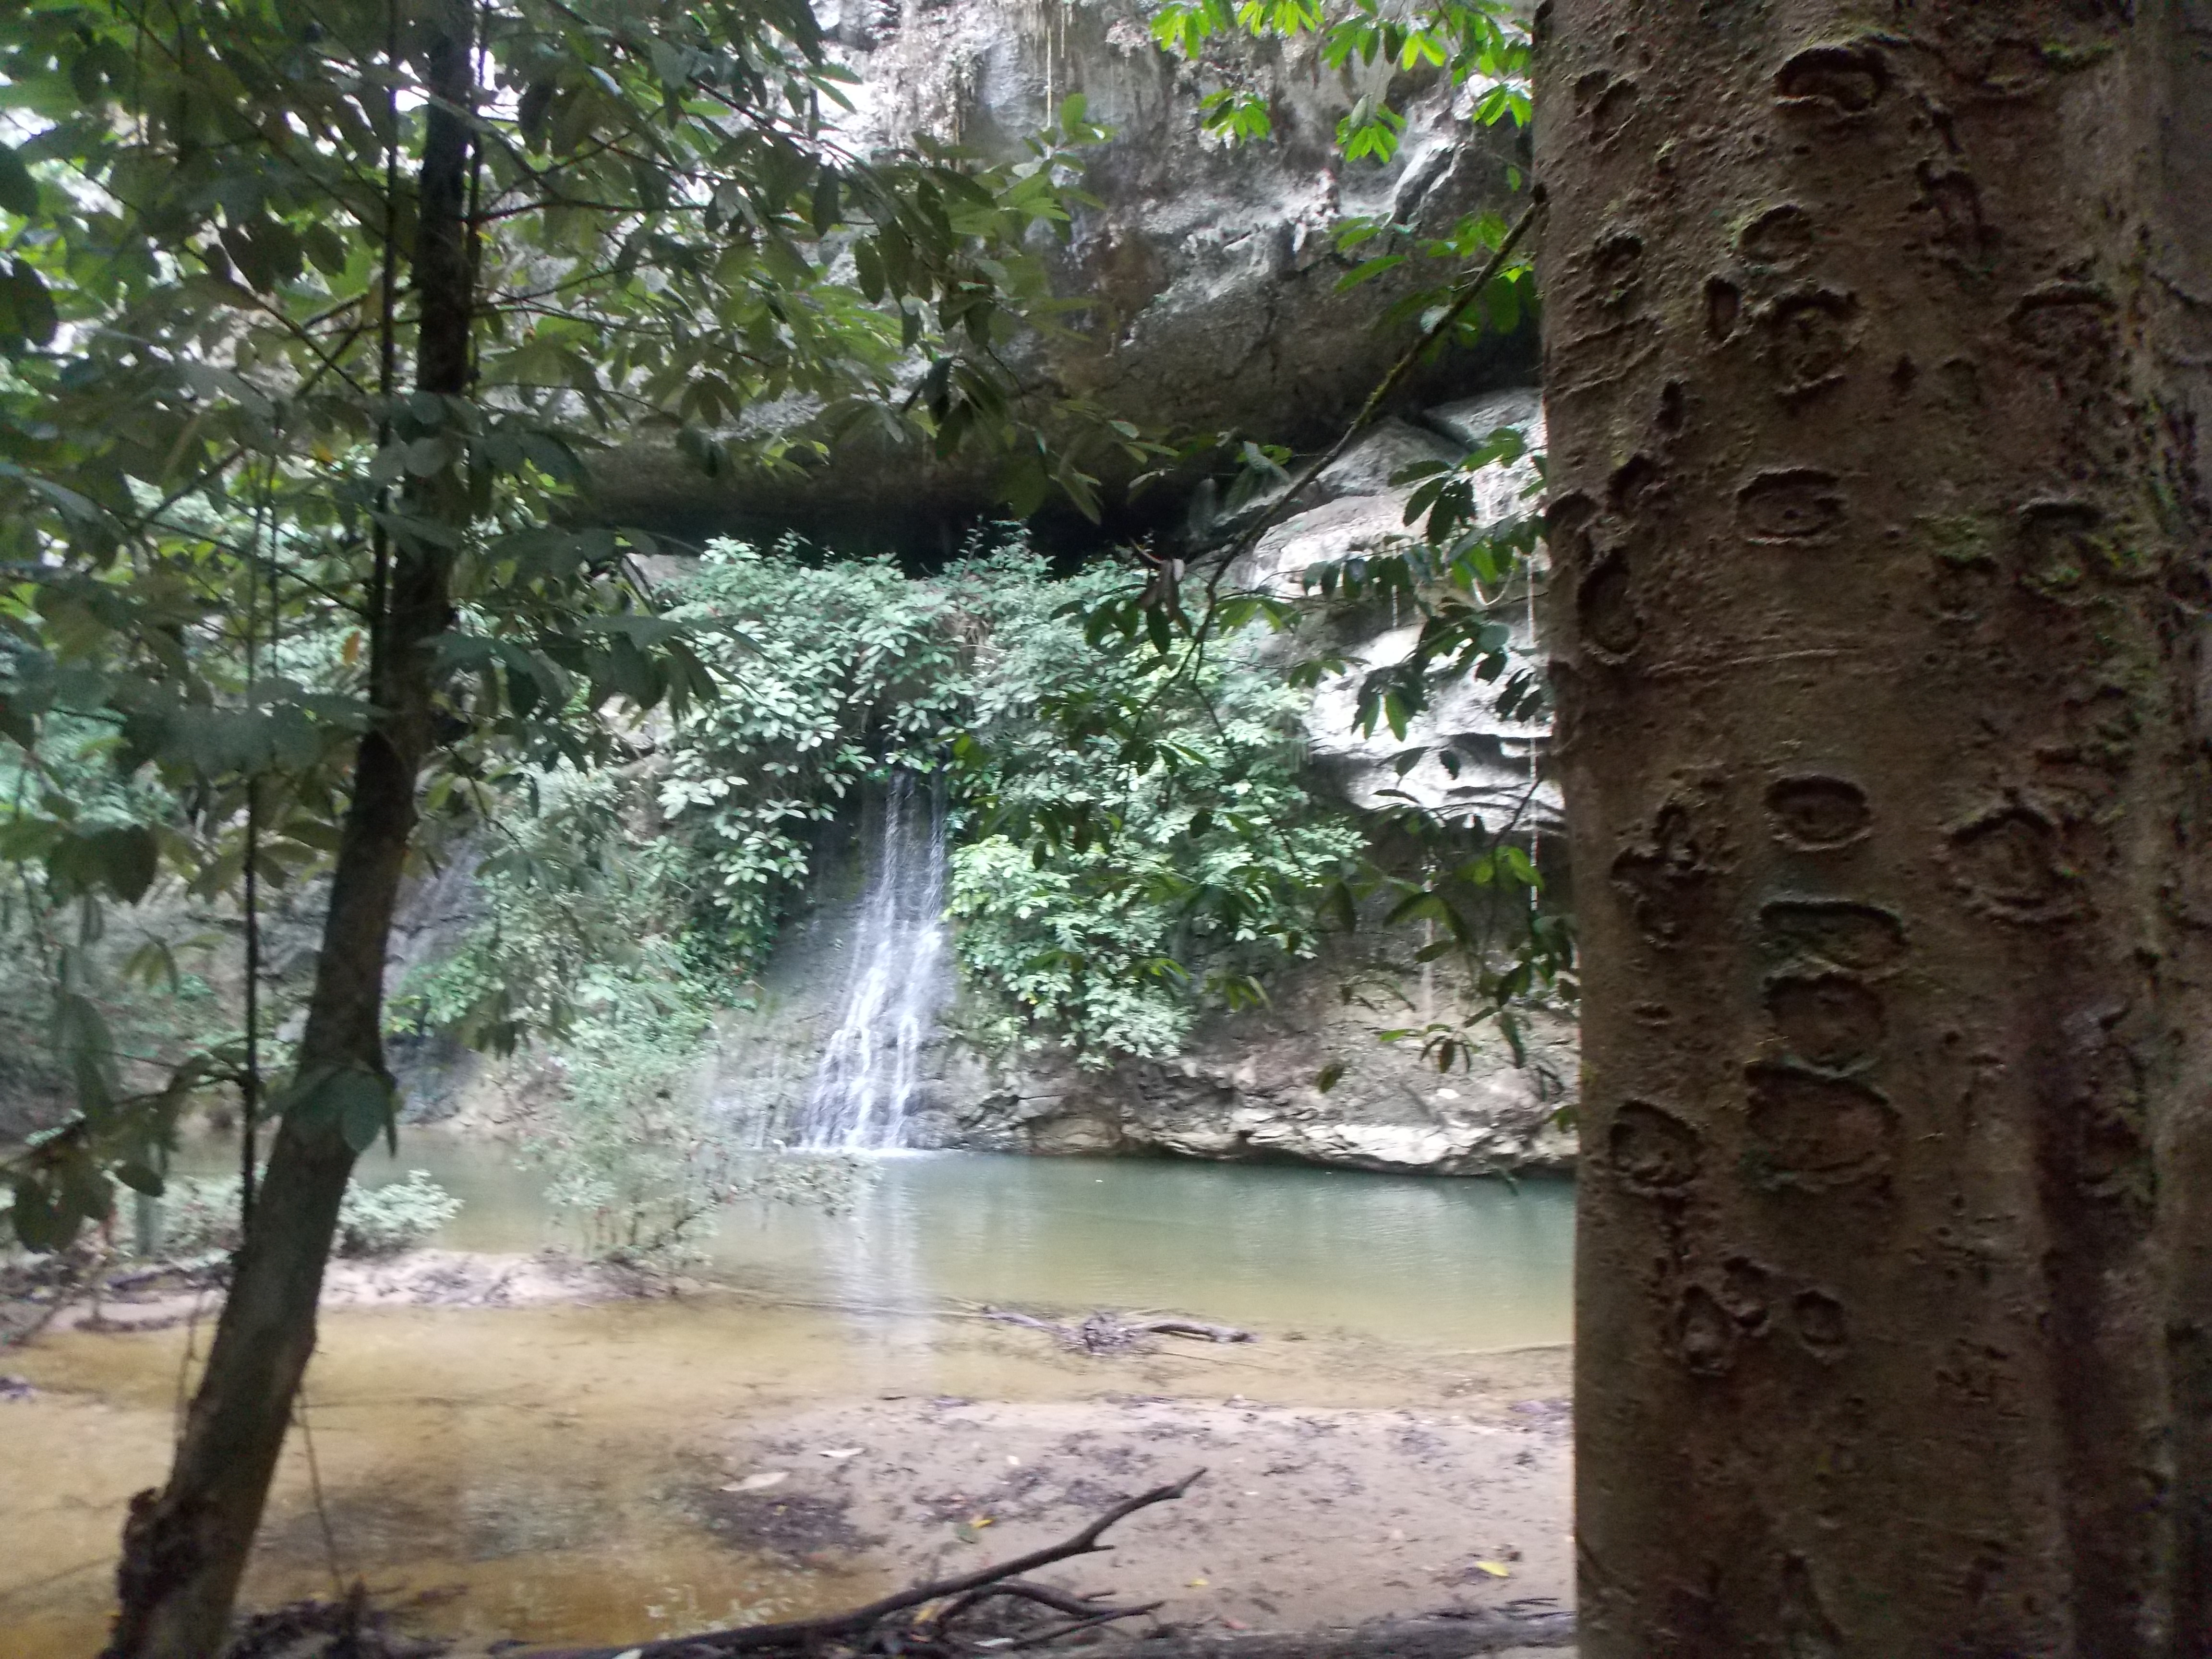 021-paku-waterfall-seen-from-the-trail